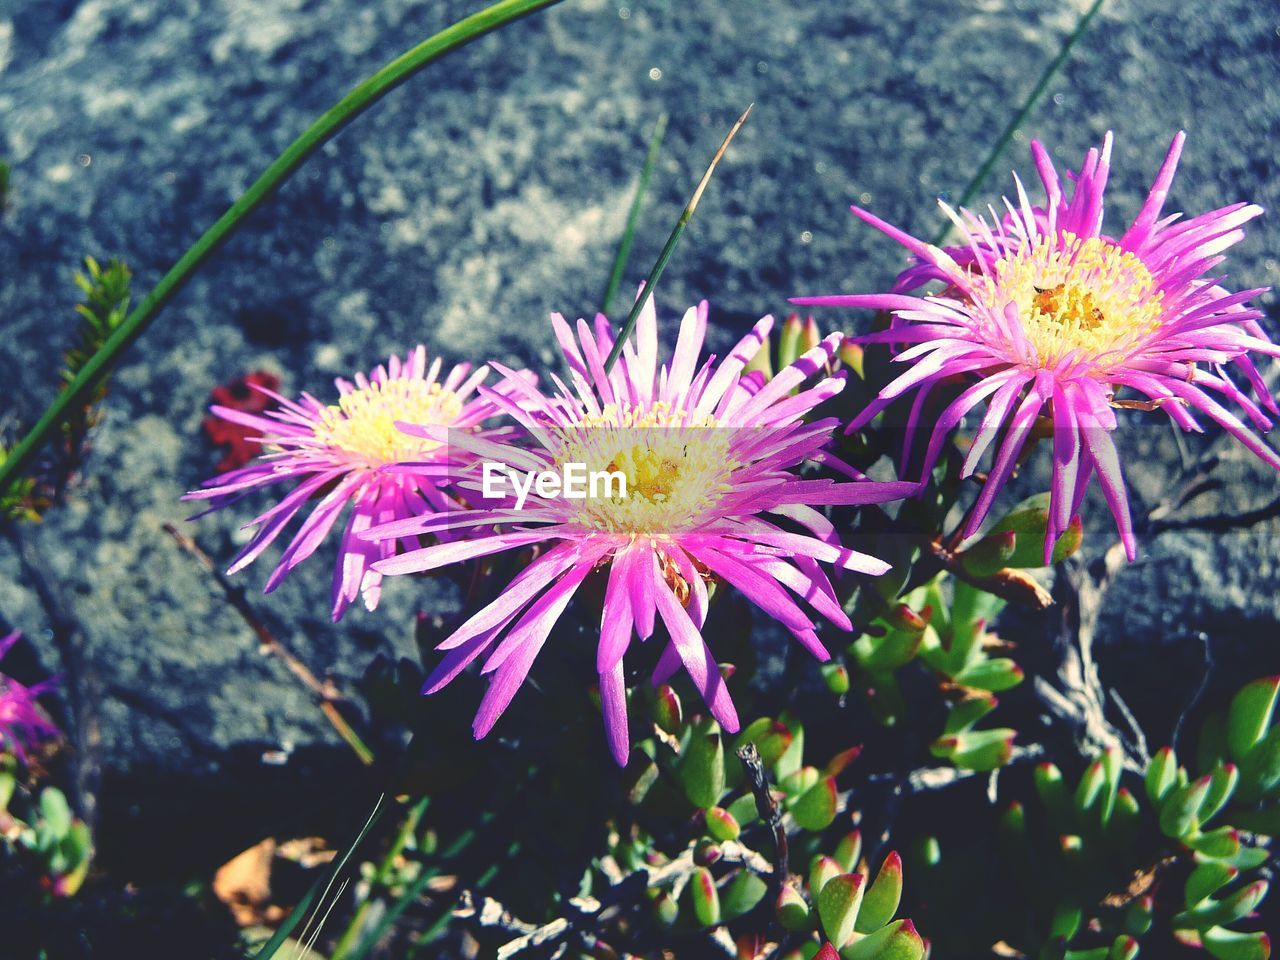 flower, fragility, freshness, petal, beauty in nature, nature, plant, flower head, growth, outdoors, no people, day, high angle view, purple, blooming, close-up